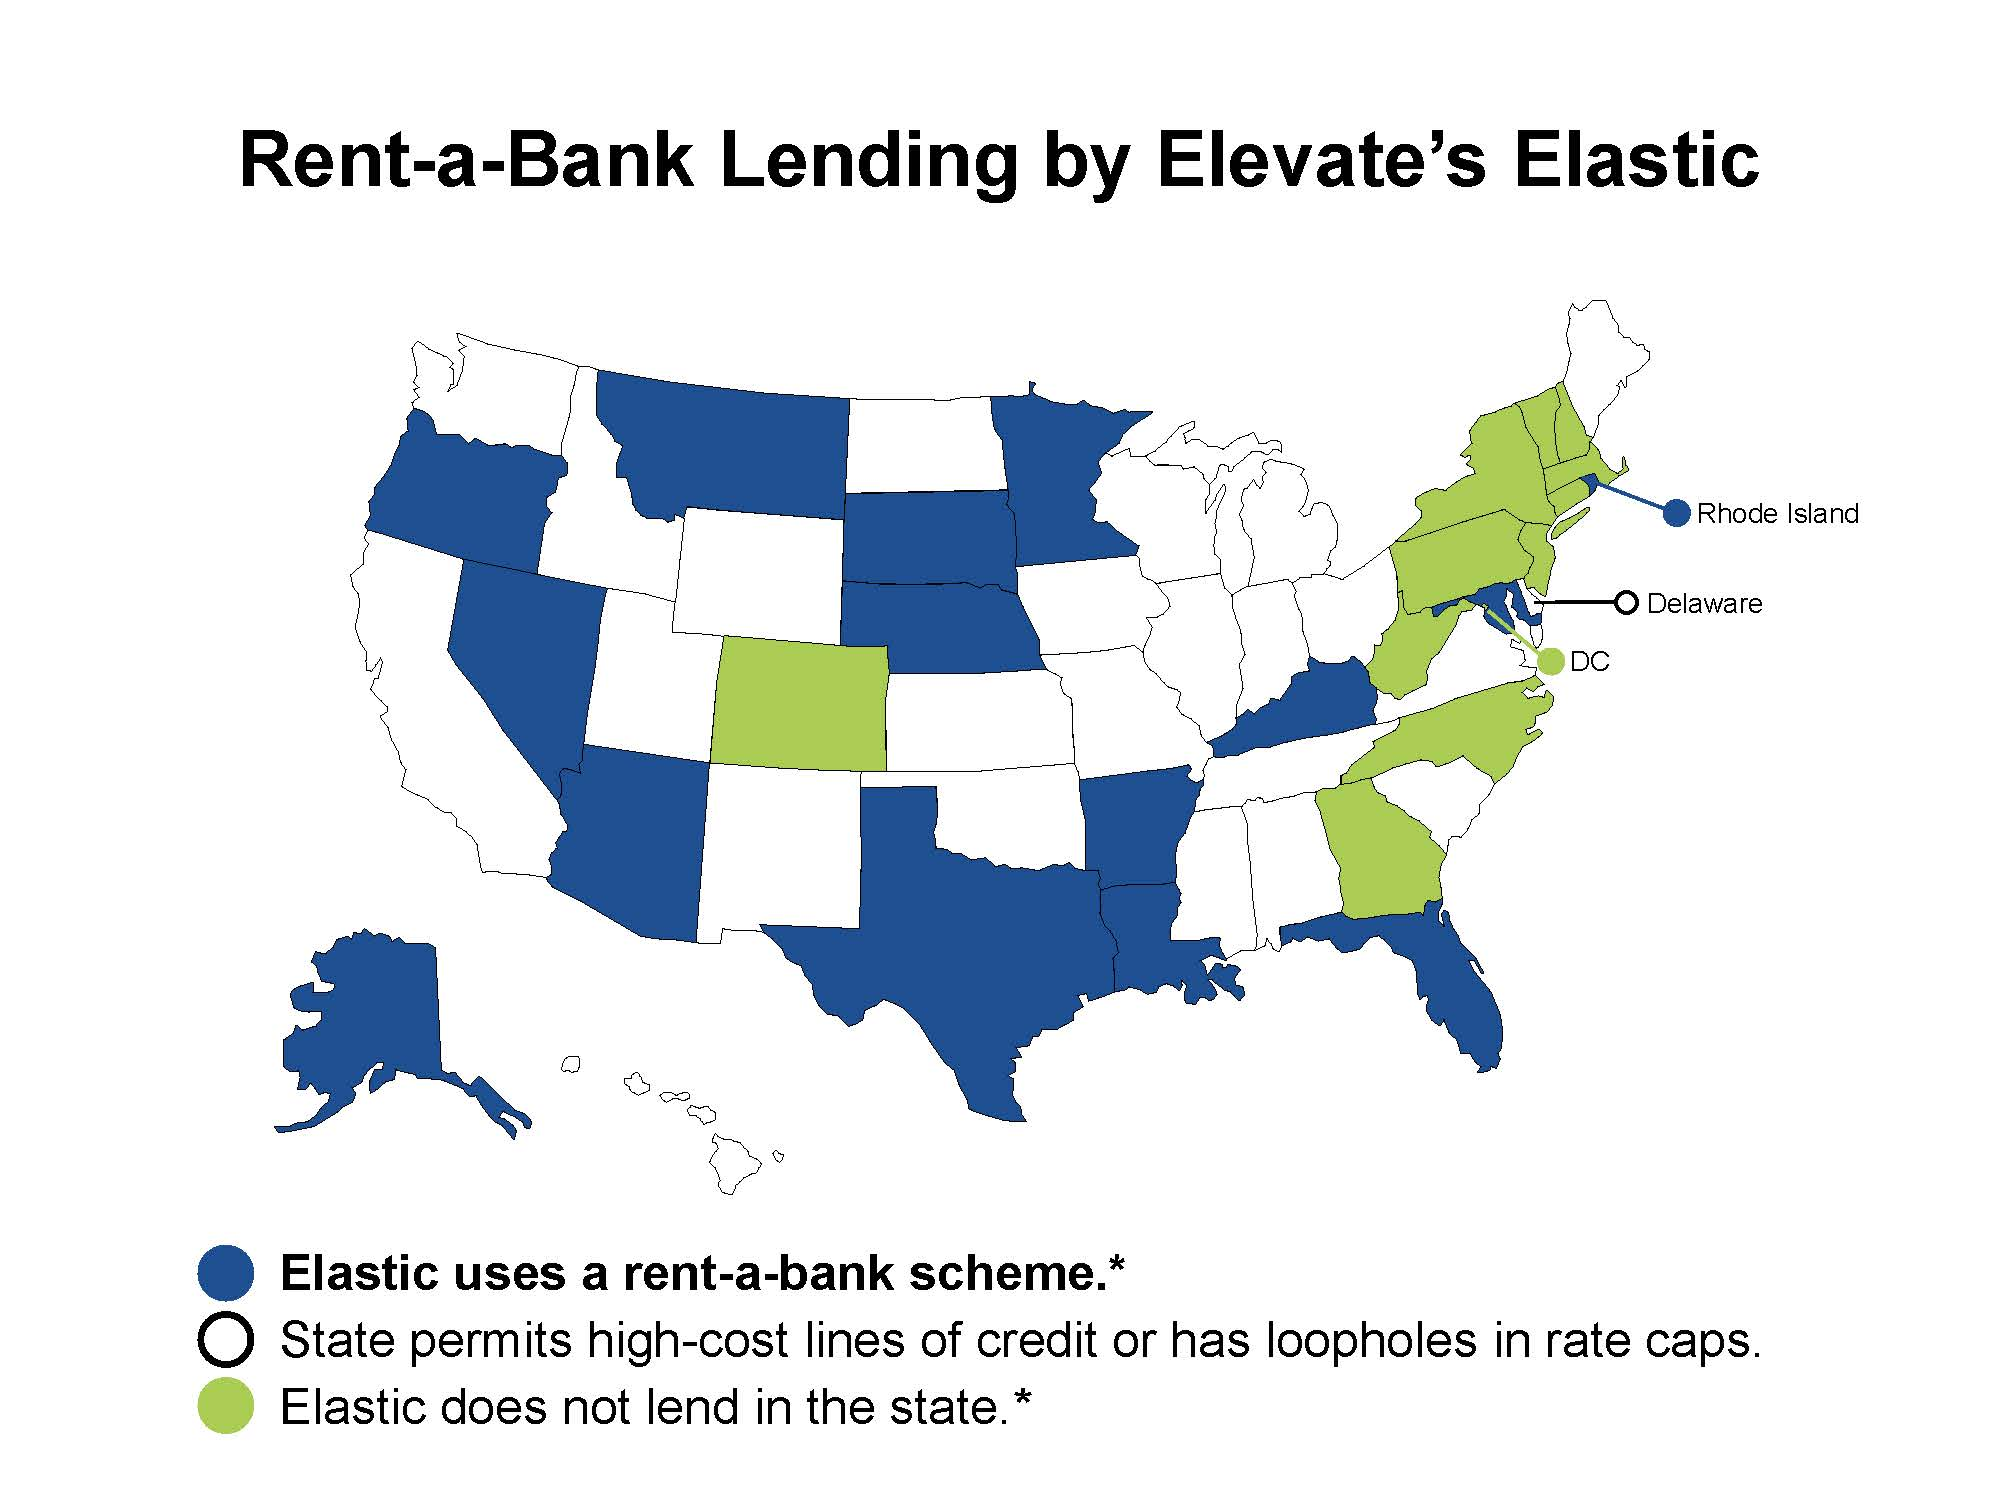 Map of the U.S. in which the states that Elevate's Elastic uses rent-a-bank schemes to avoid state rate caps are colored in blue. States in which Elevate's Elastic directly lends are white, while the states in which the organization does not lend are in green.